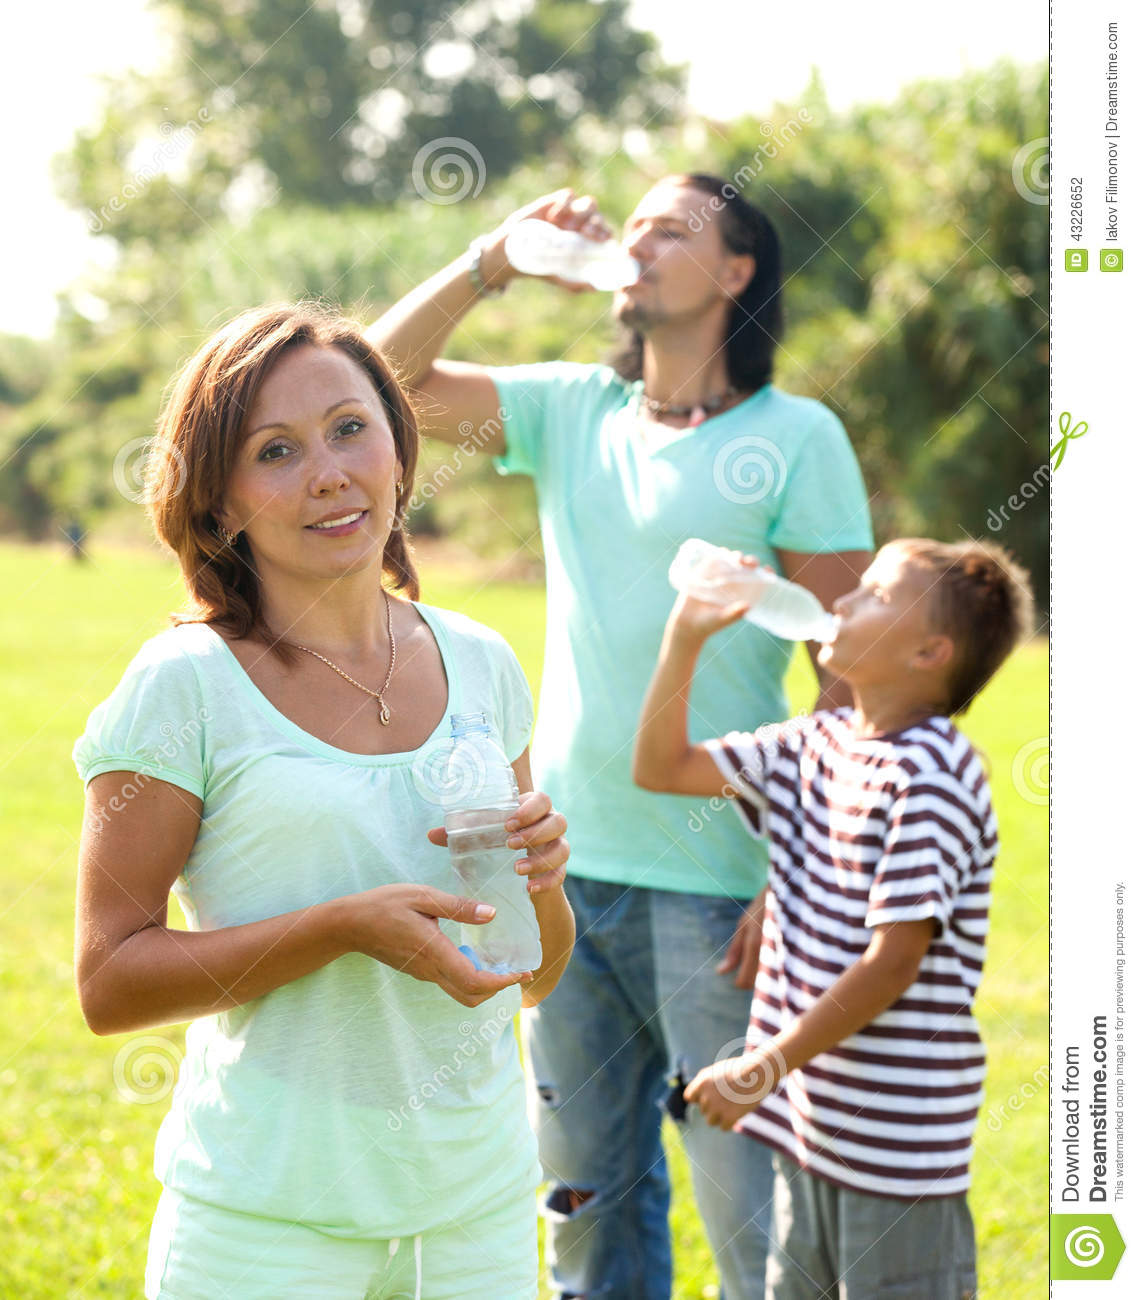 Drinking Water In Summer Park Stock Photo Image 43226652